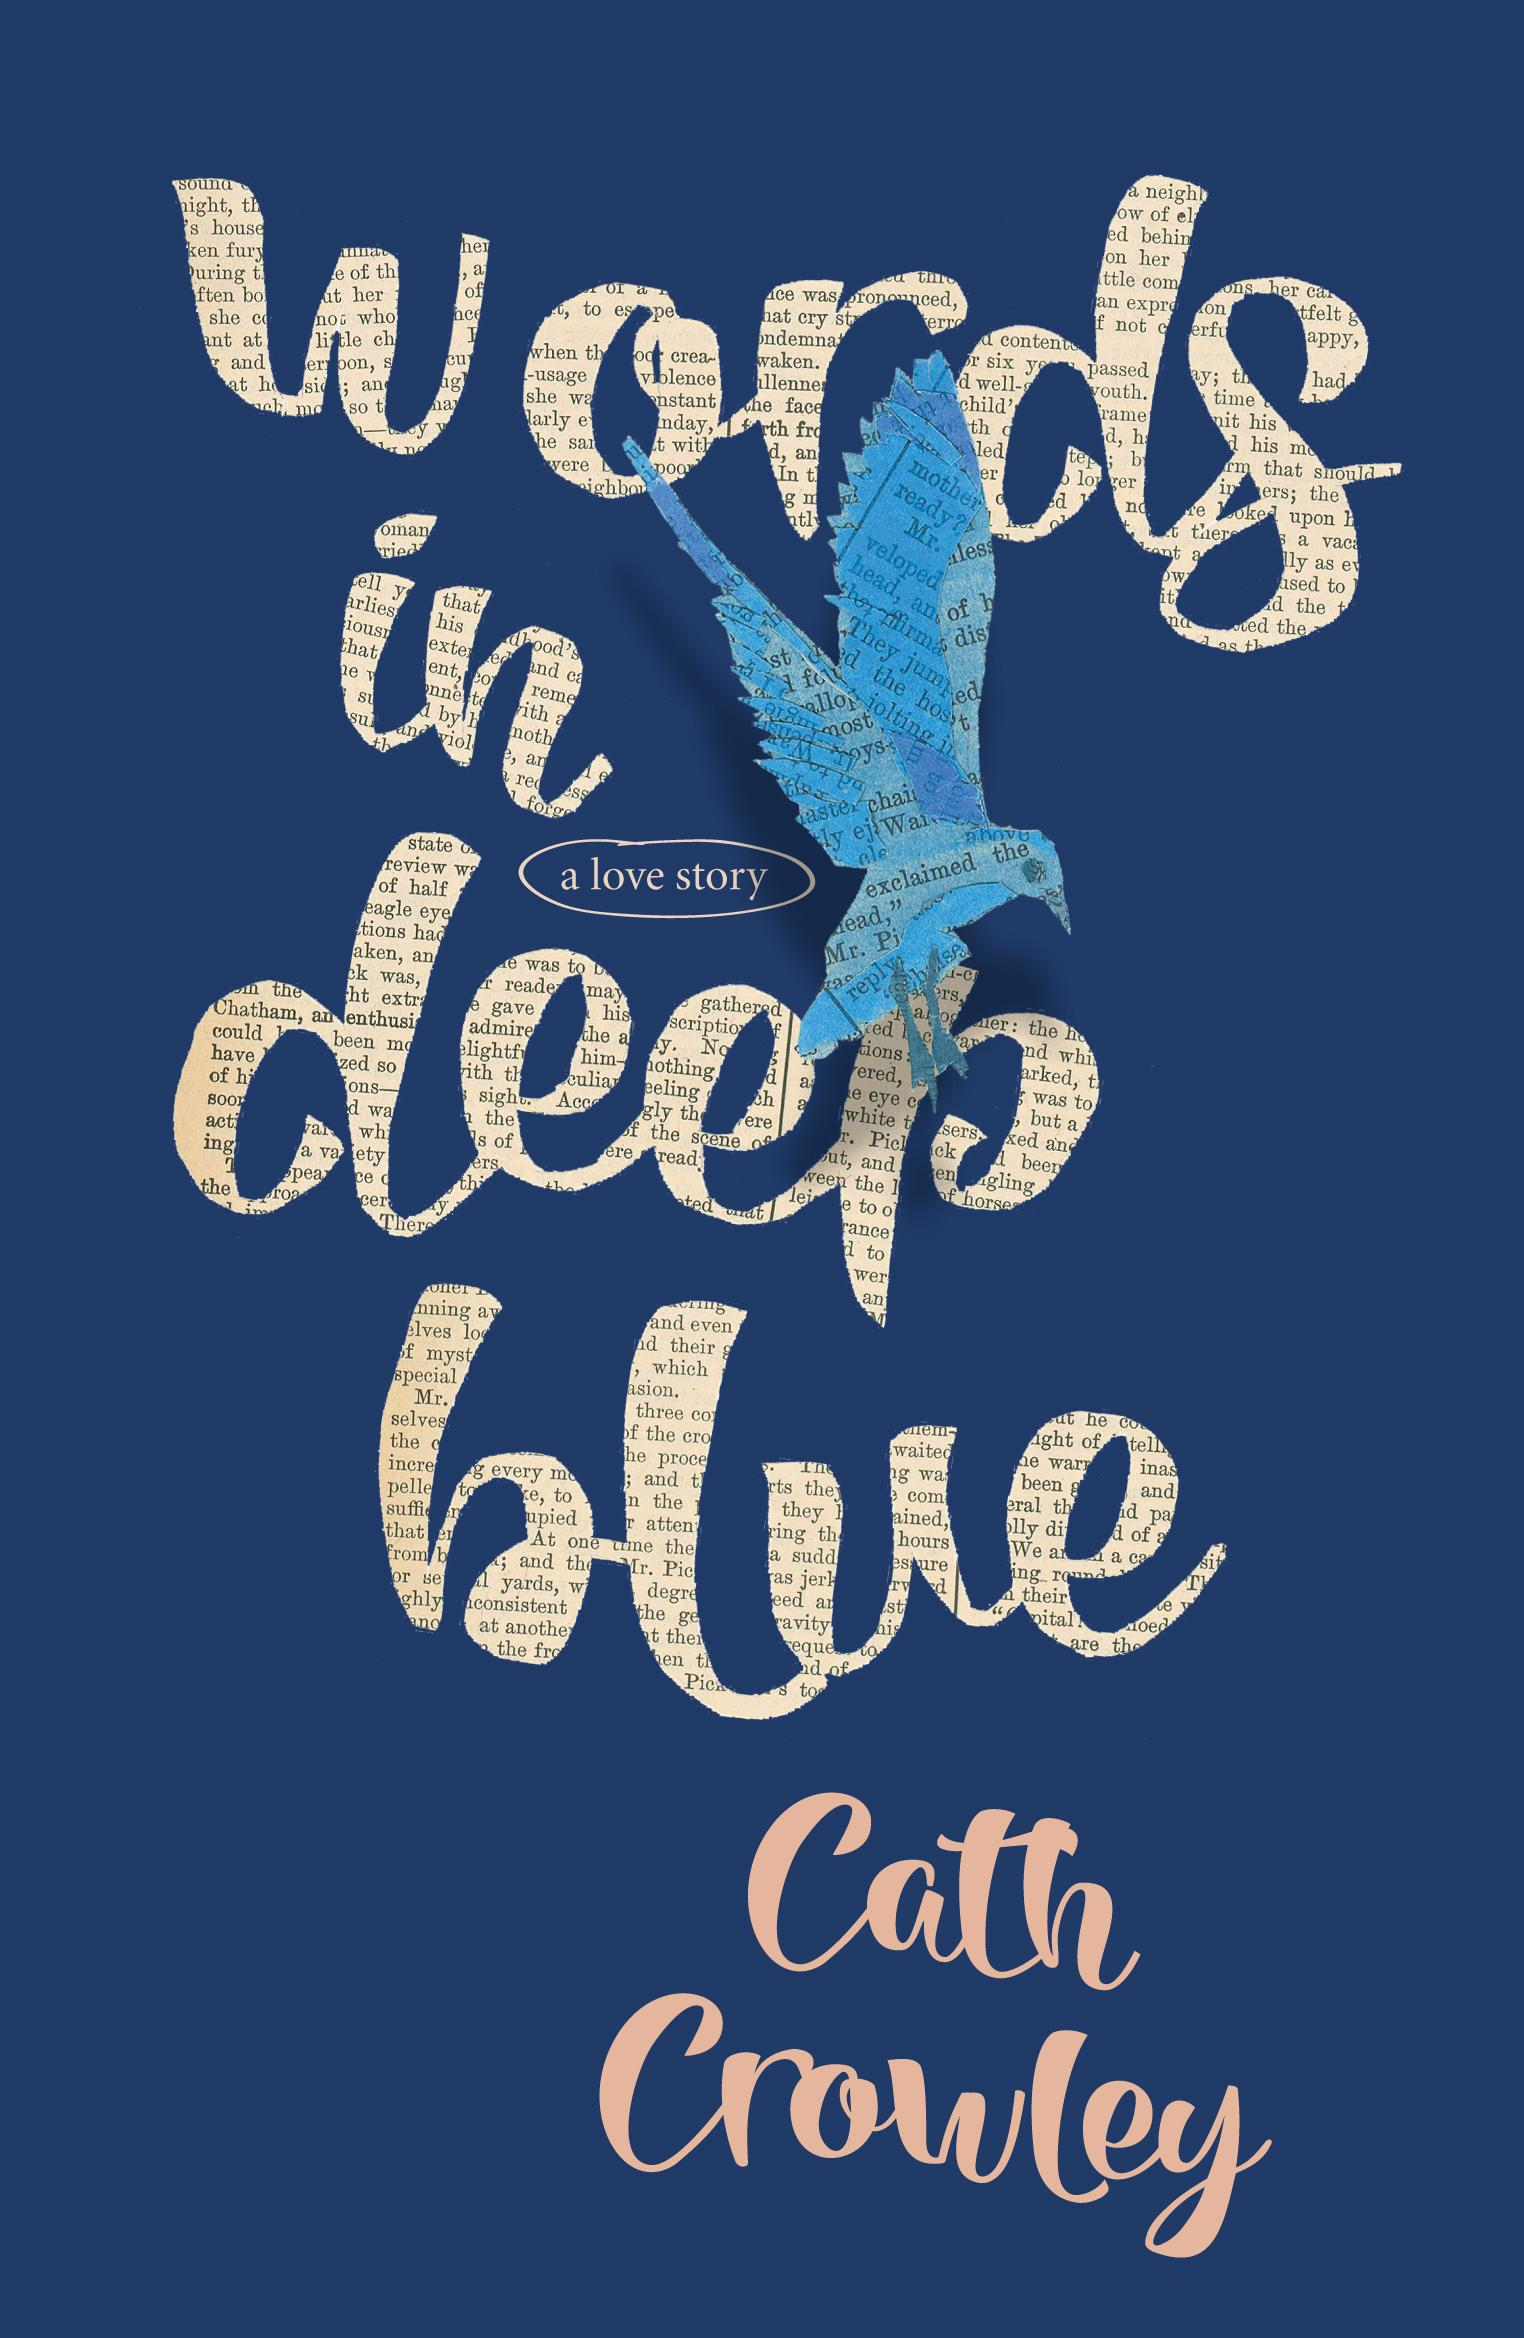 https://www.readings.com.au/products/22053005/words-in-deep-blue